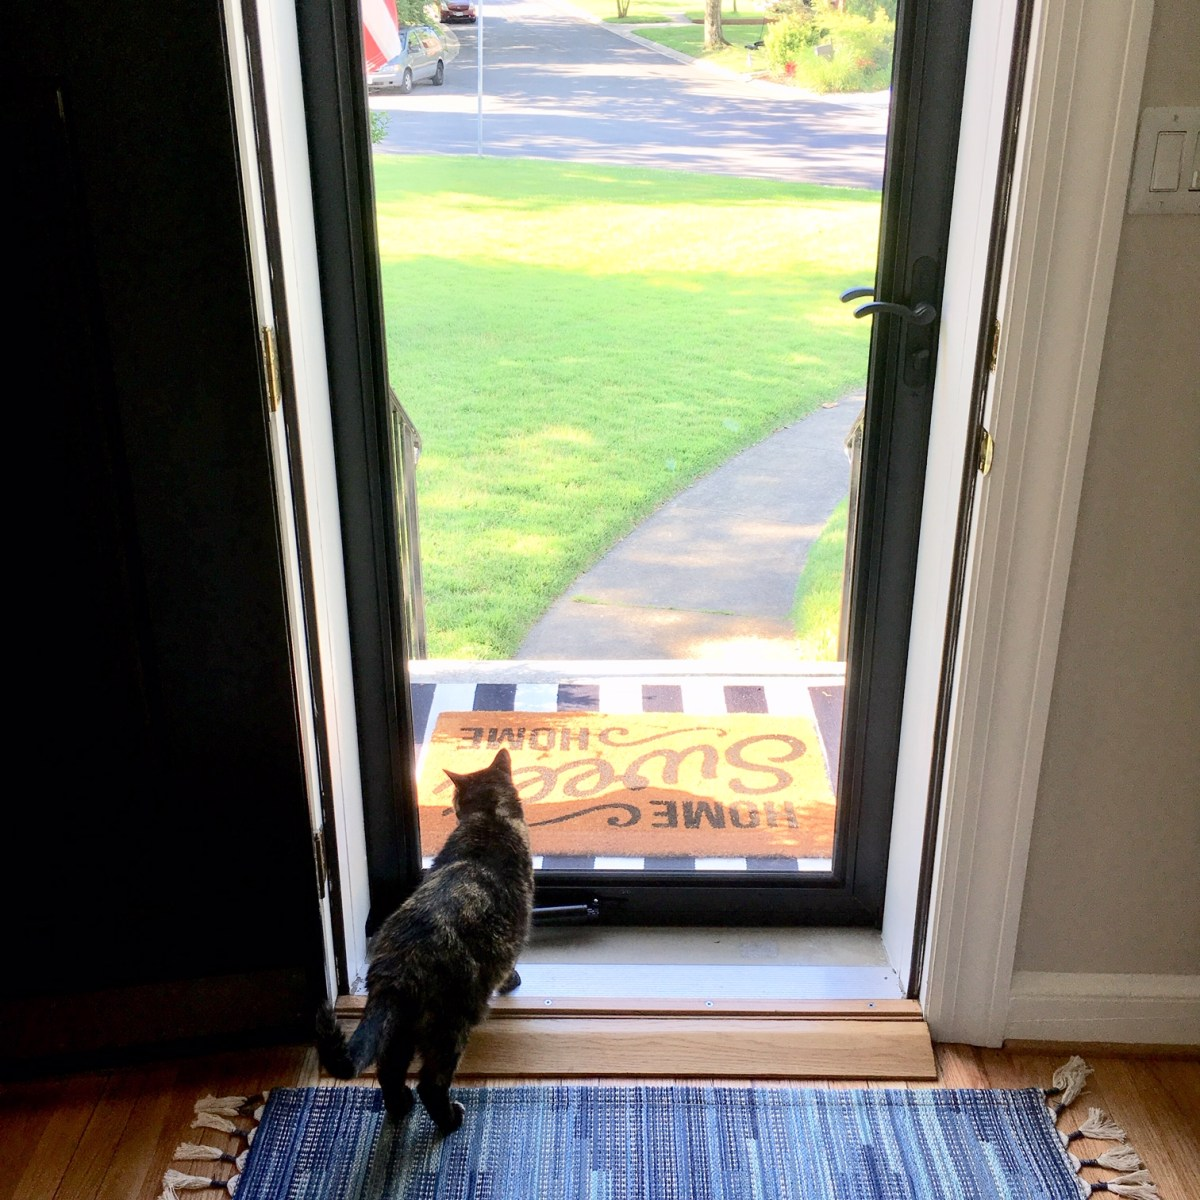 A cat stands just inside a home's front entrance, looking out into the neighborhood through the large glass panel of a storm door.